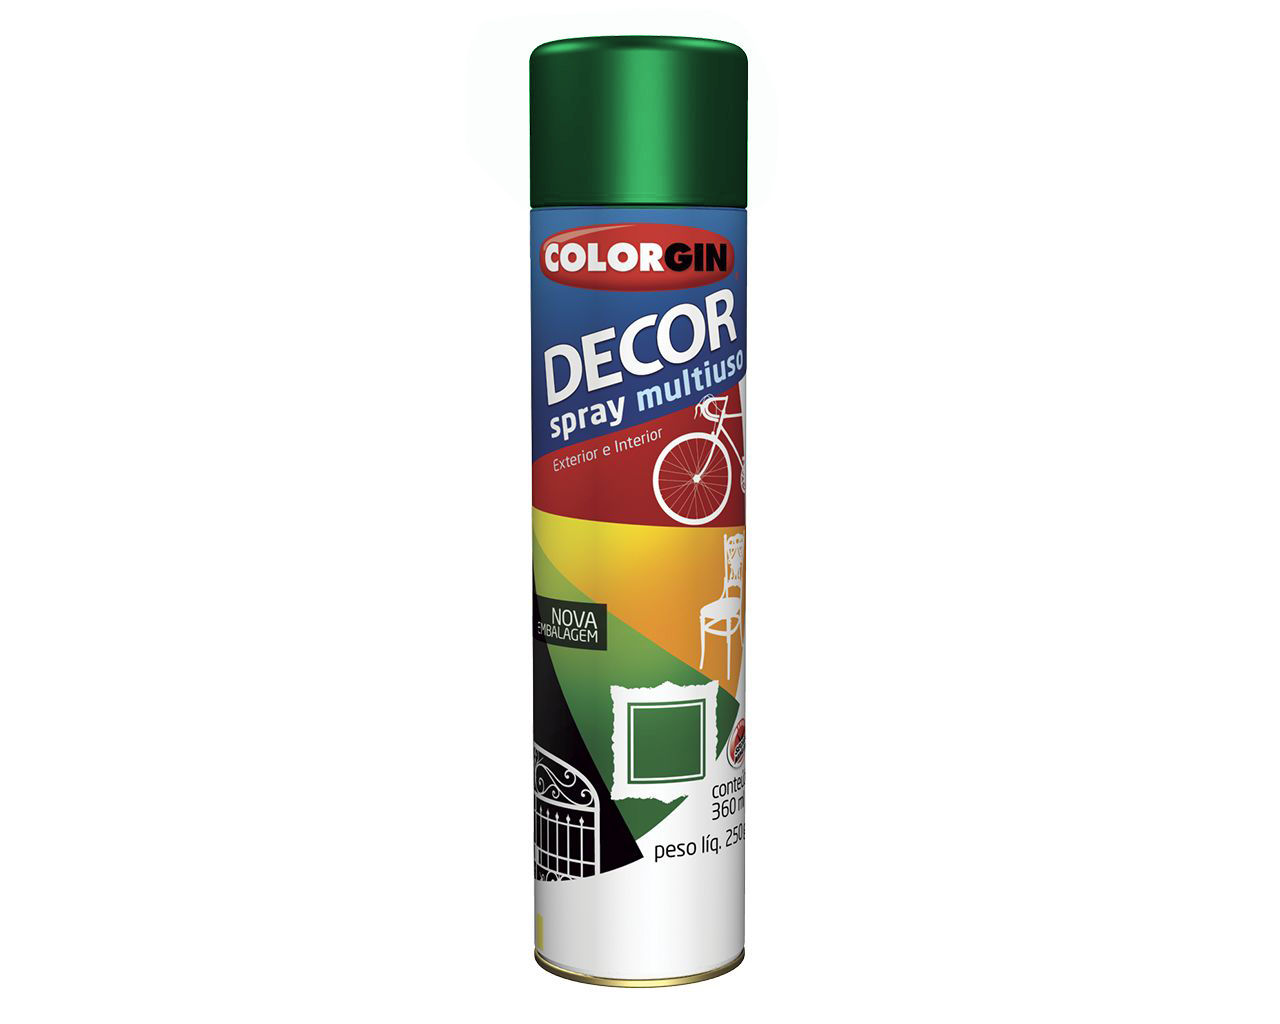 TINTA SPRAY DECOR VERDE